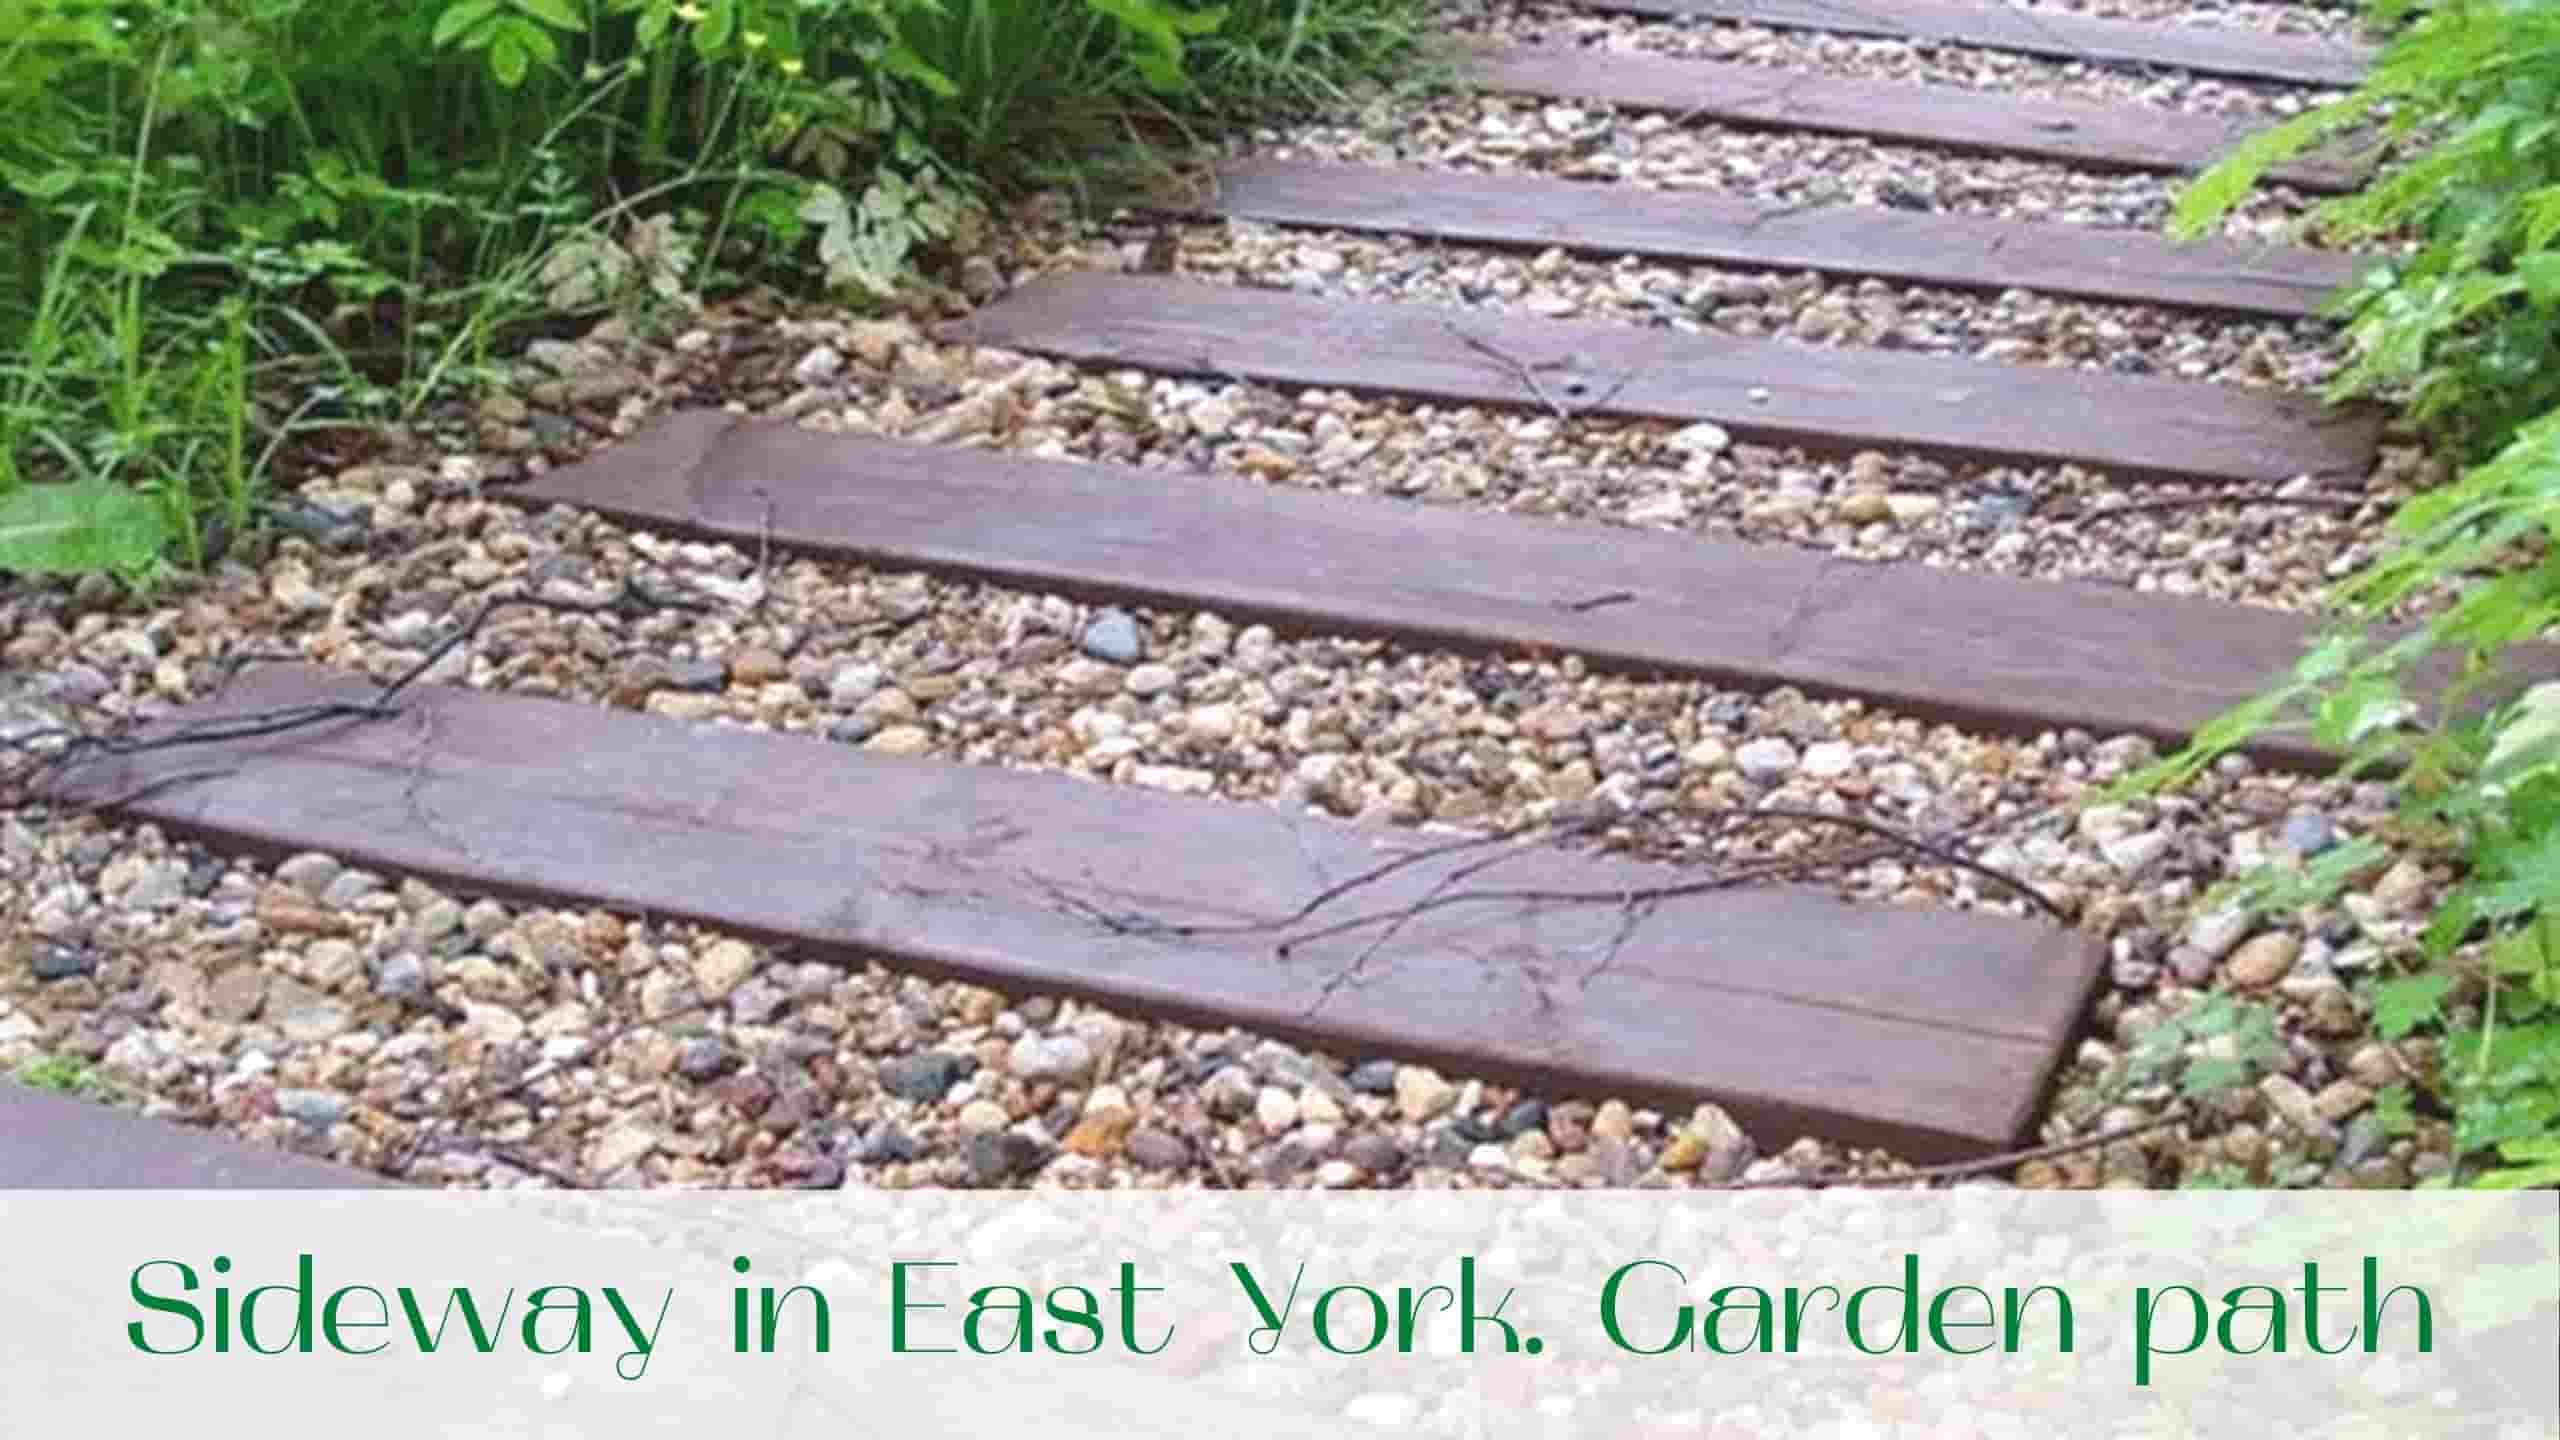 image-Garden-path-in-east-york